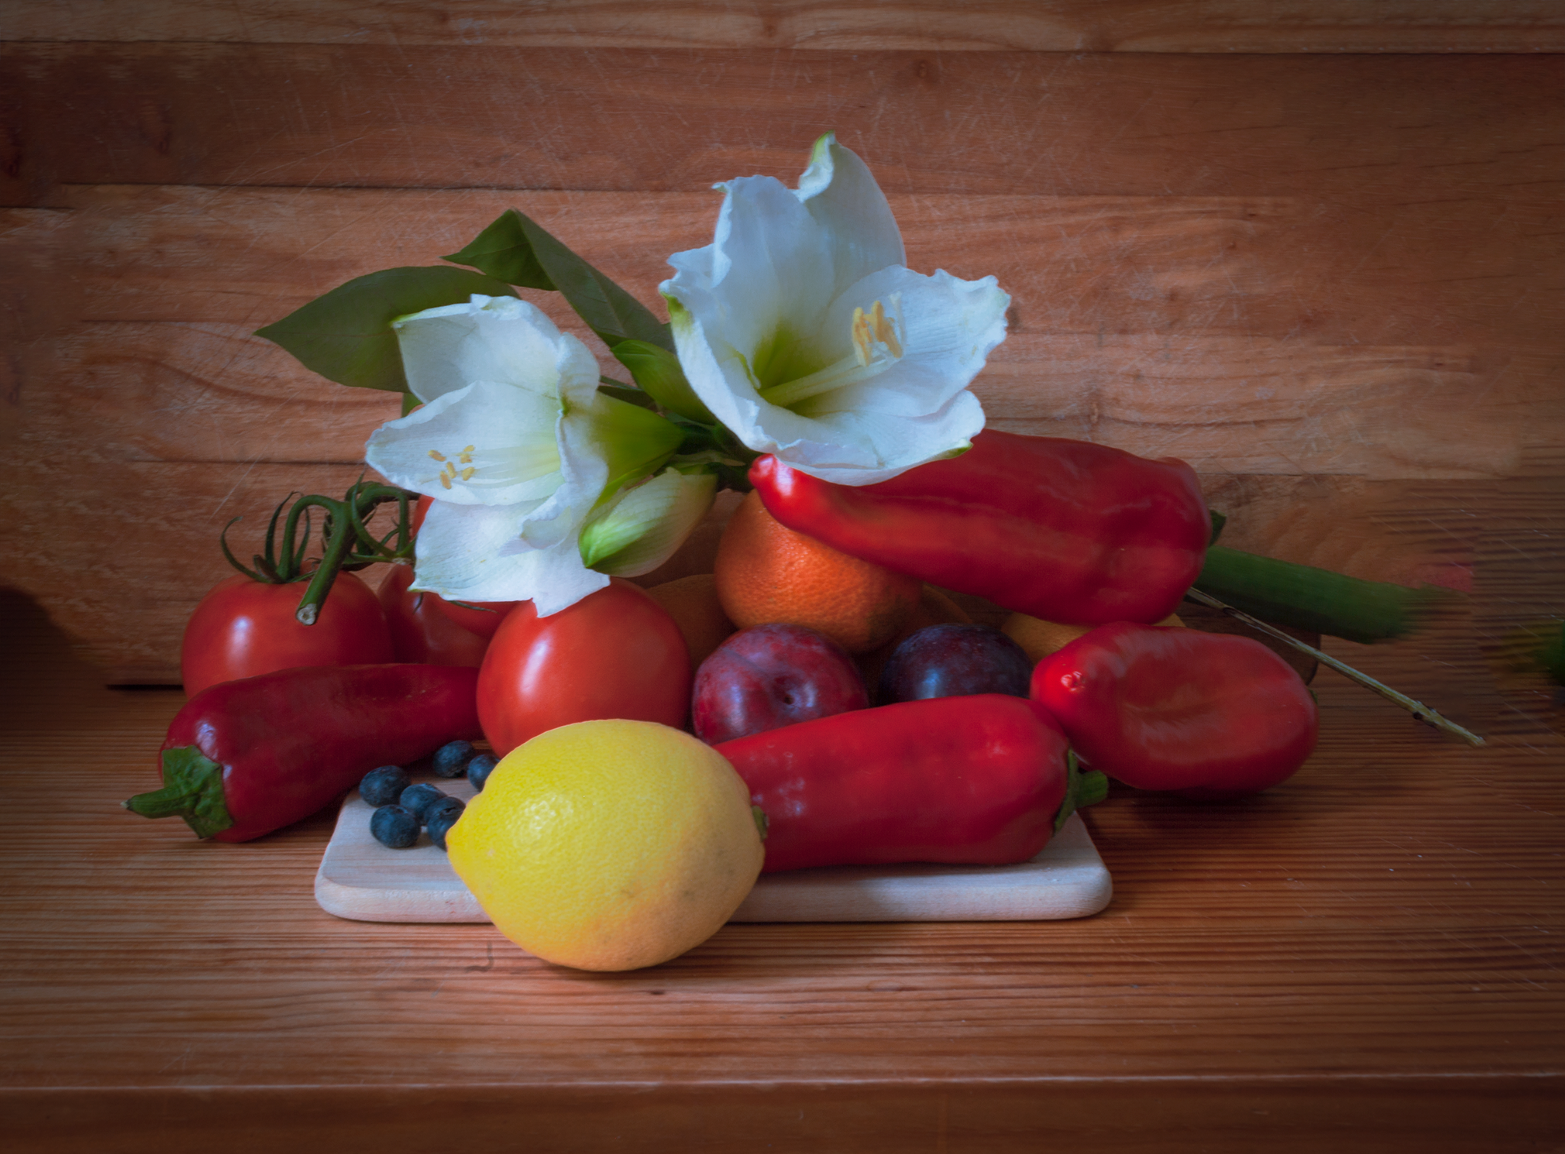 Lemon andPeppers still life photograph, by Sean P. Durham, Berlin, 2020